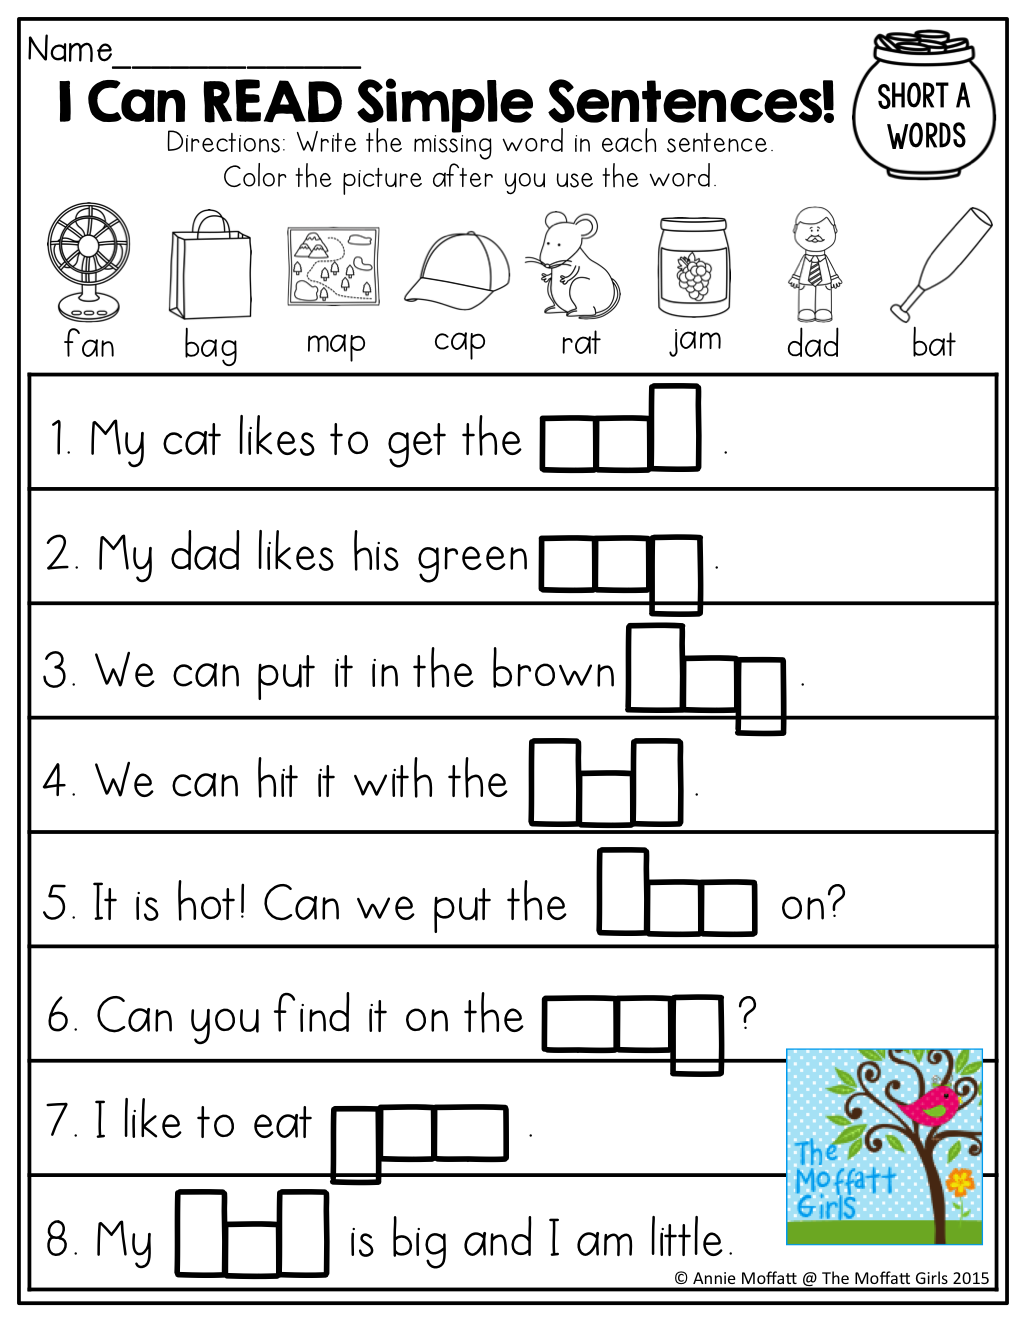 small resolution of I Can READ! Simple Sentences with CVC words to fill in!   Word family  worksheets